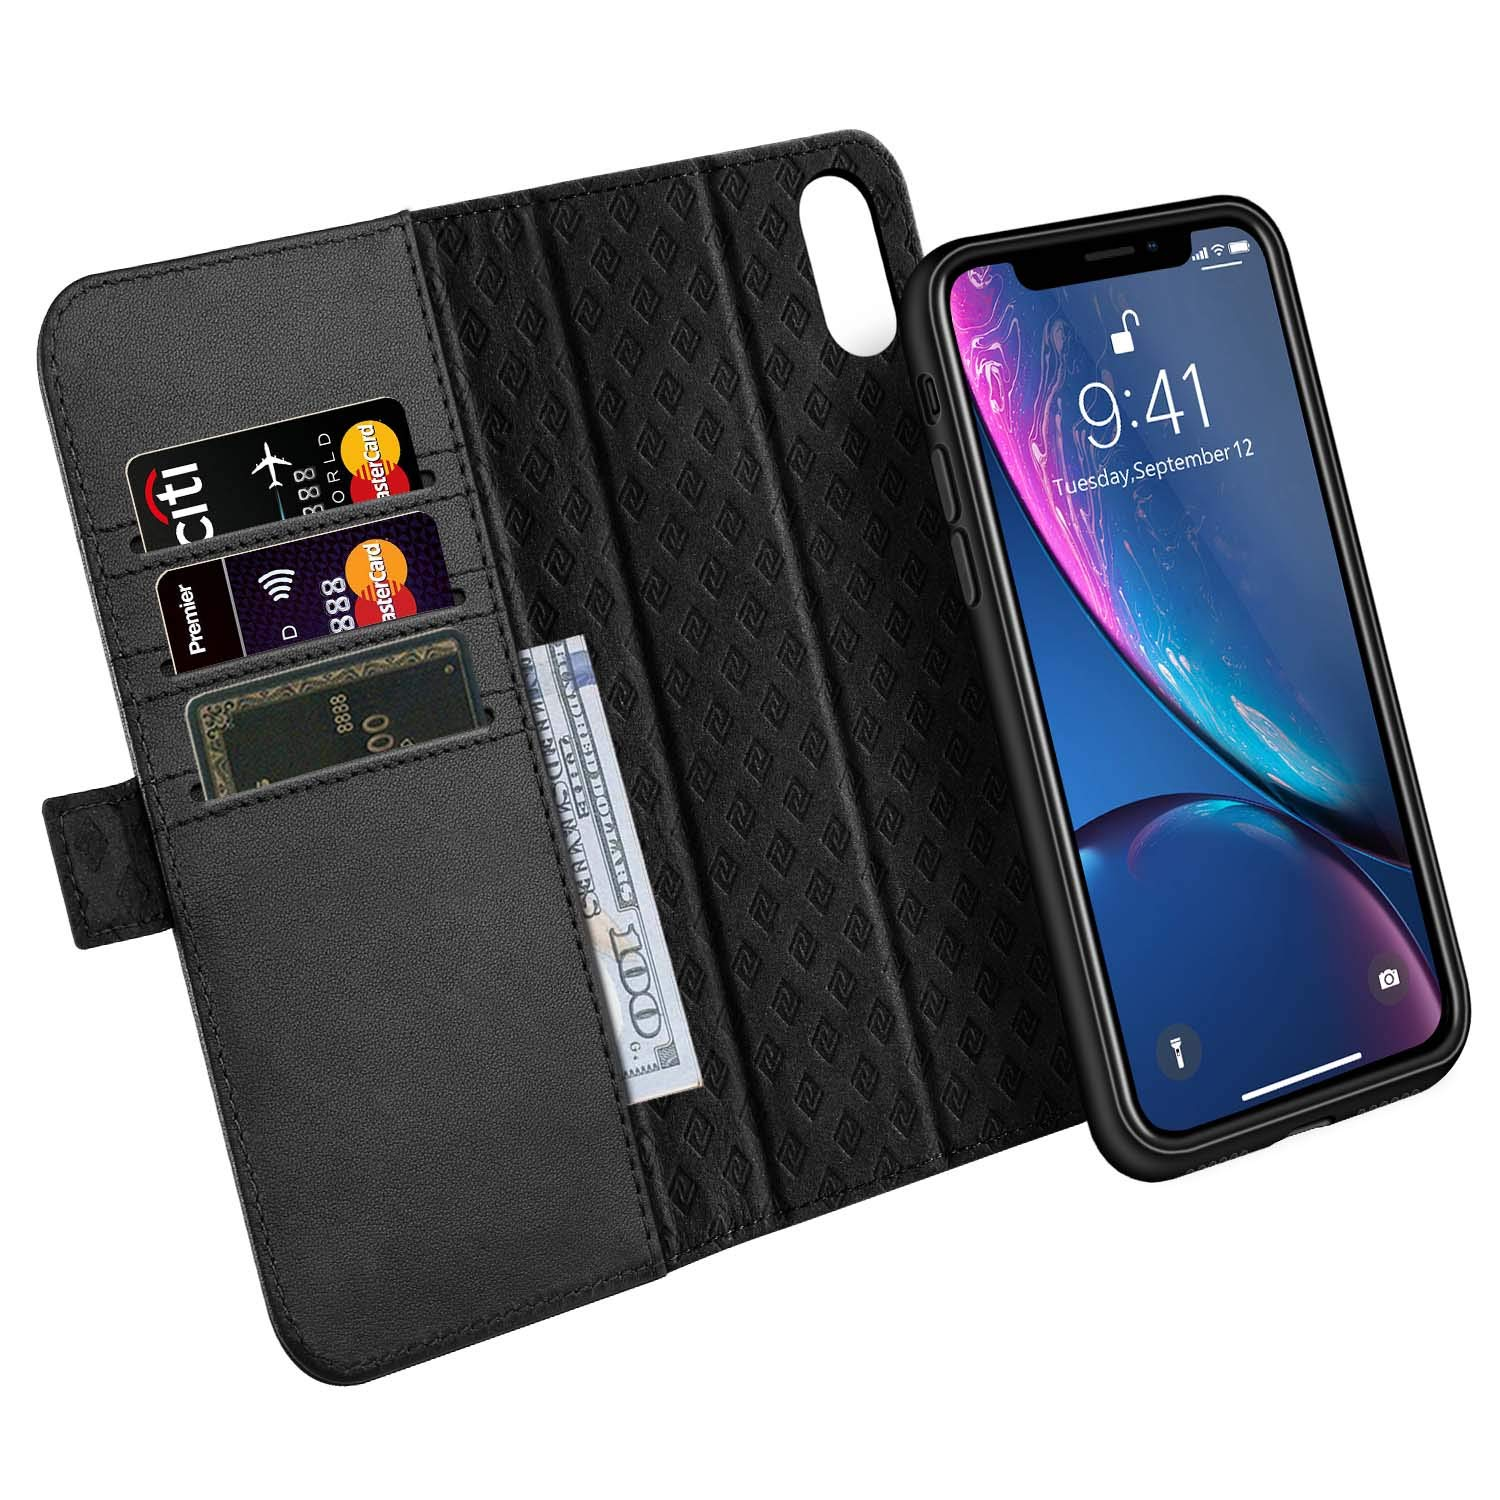 ZOVER Detachable Wallet Case Compatible with iPhone XR with RFID Blocking Kickstand Feature Genuine Leather Card Bison Fone Slots Magnetic Clasps Gift Box Black by ZOVER